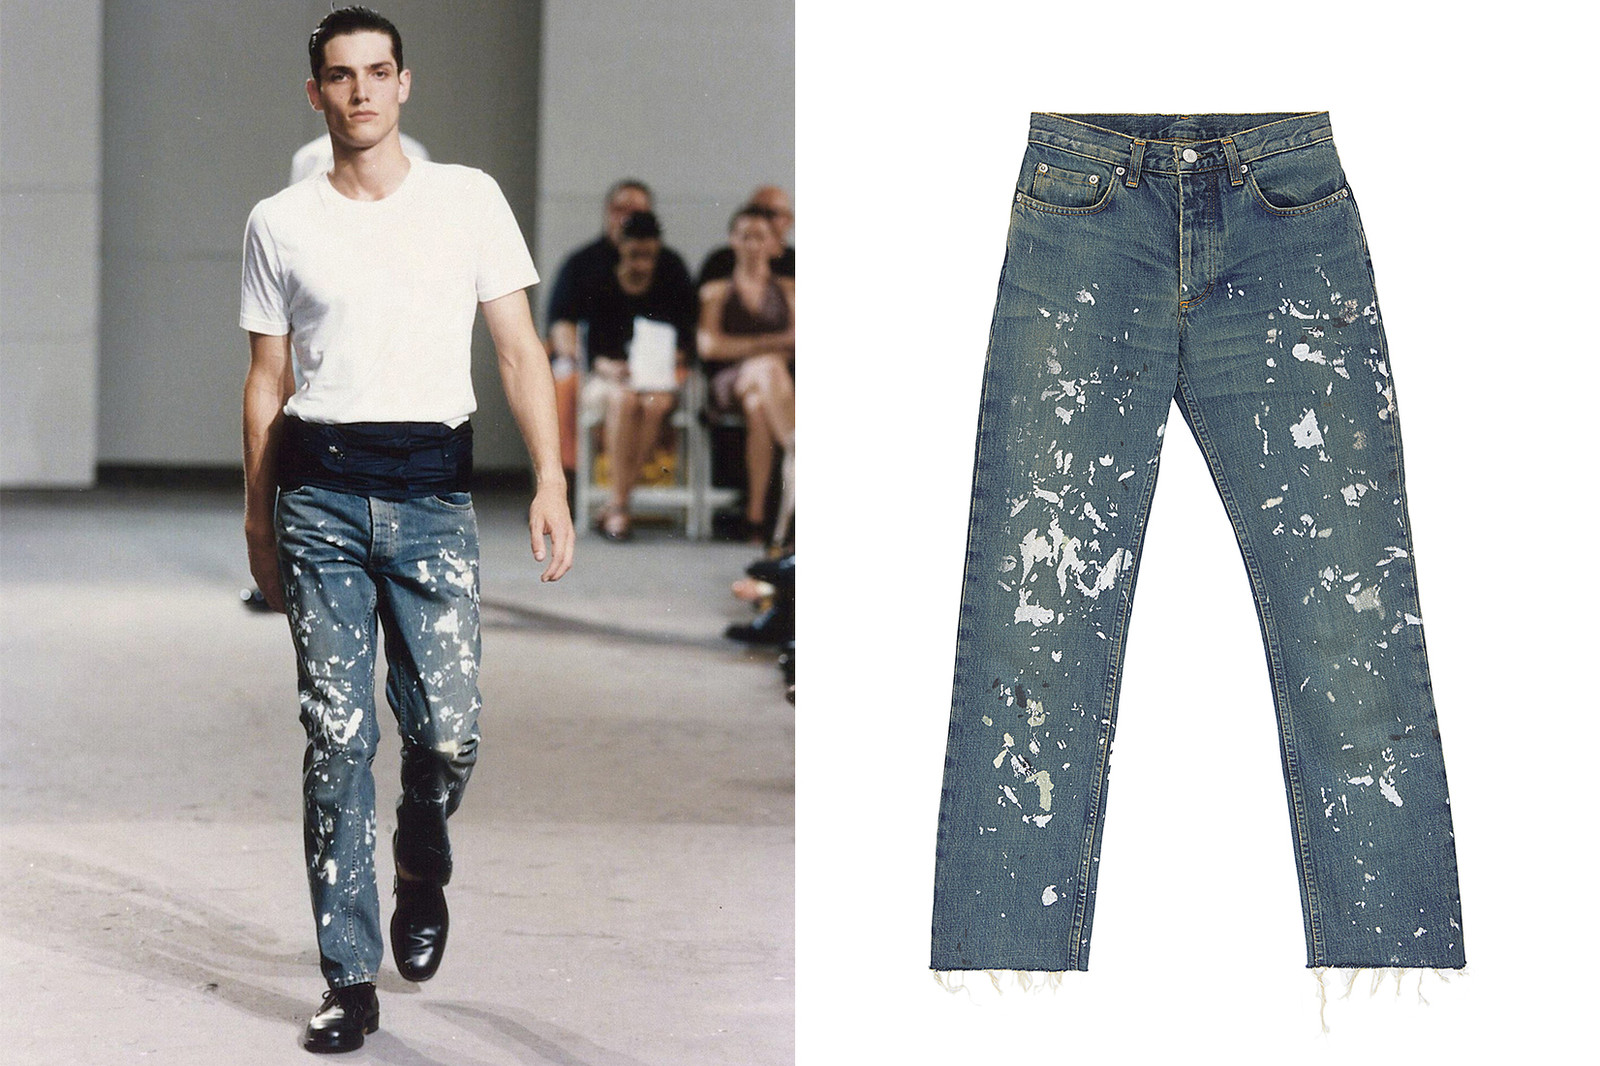 Helmut Lang denim jeans at ENDYMA's showroom. Petros Toufexis